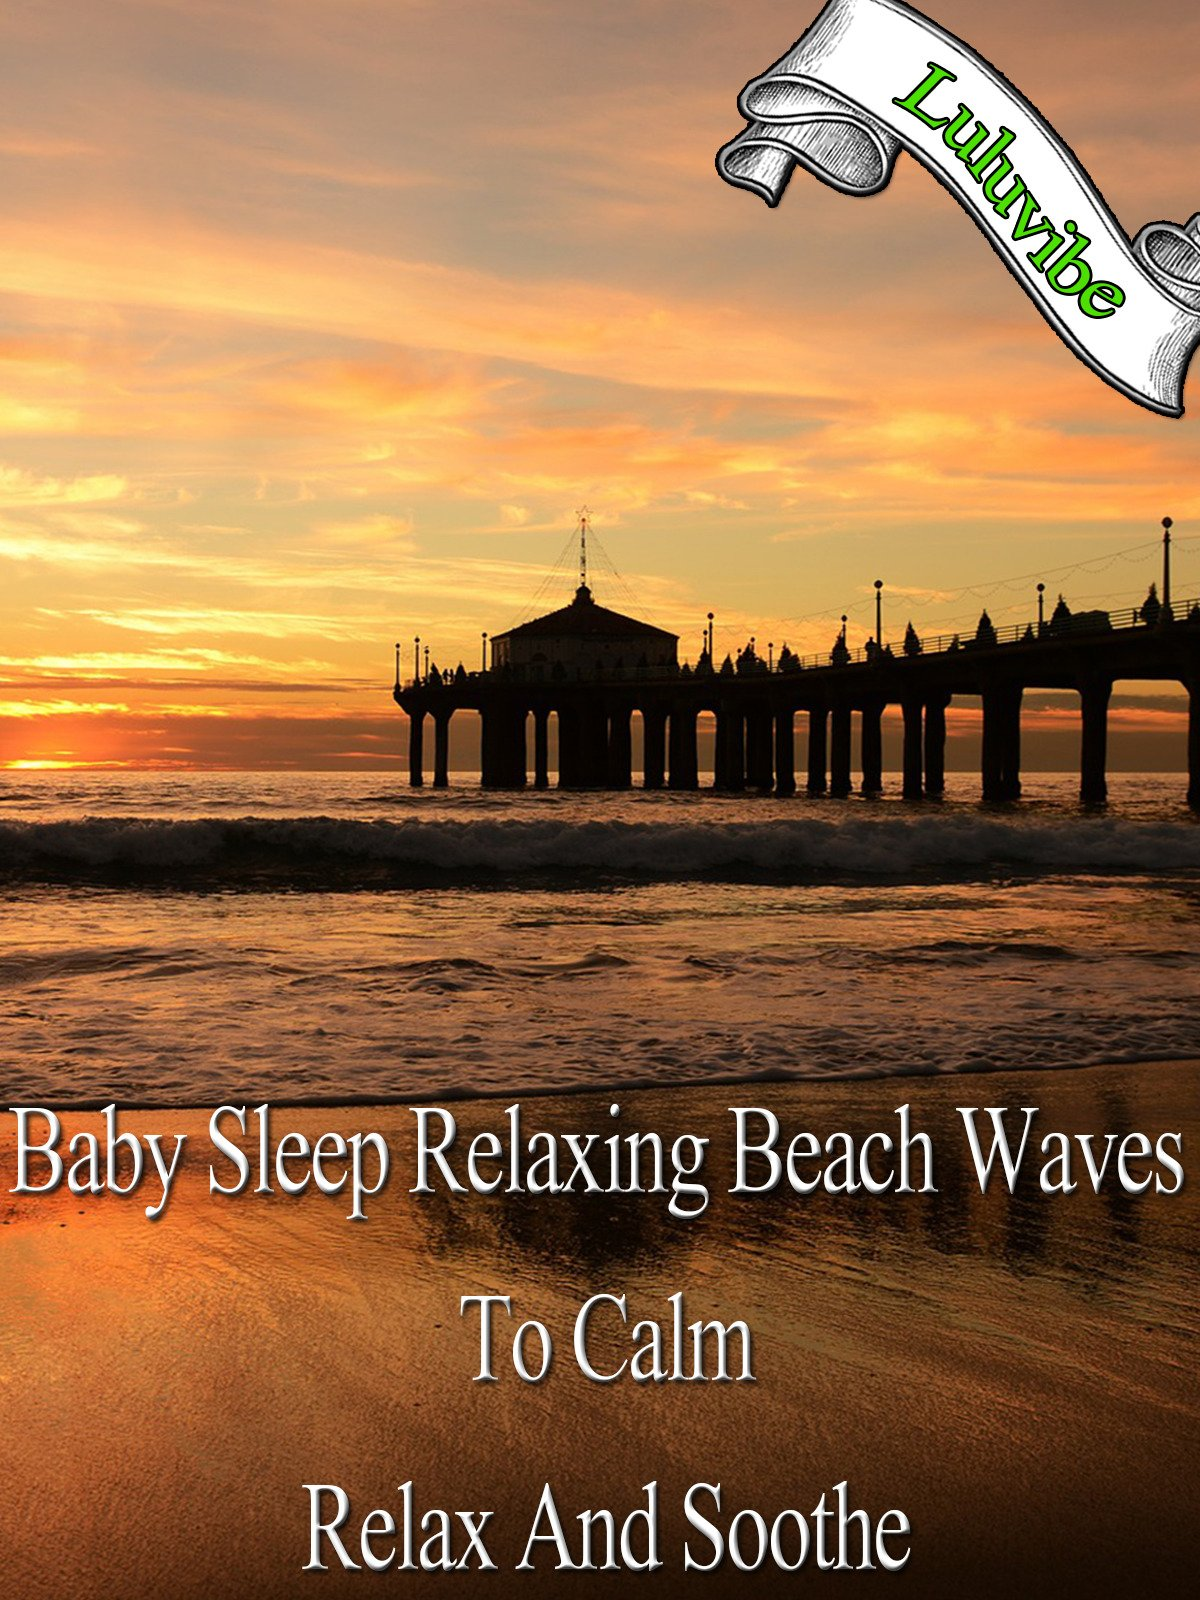 Baby Sleep Relaxing Beach Waves To Calm, Relax And Soothe